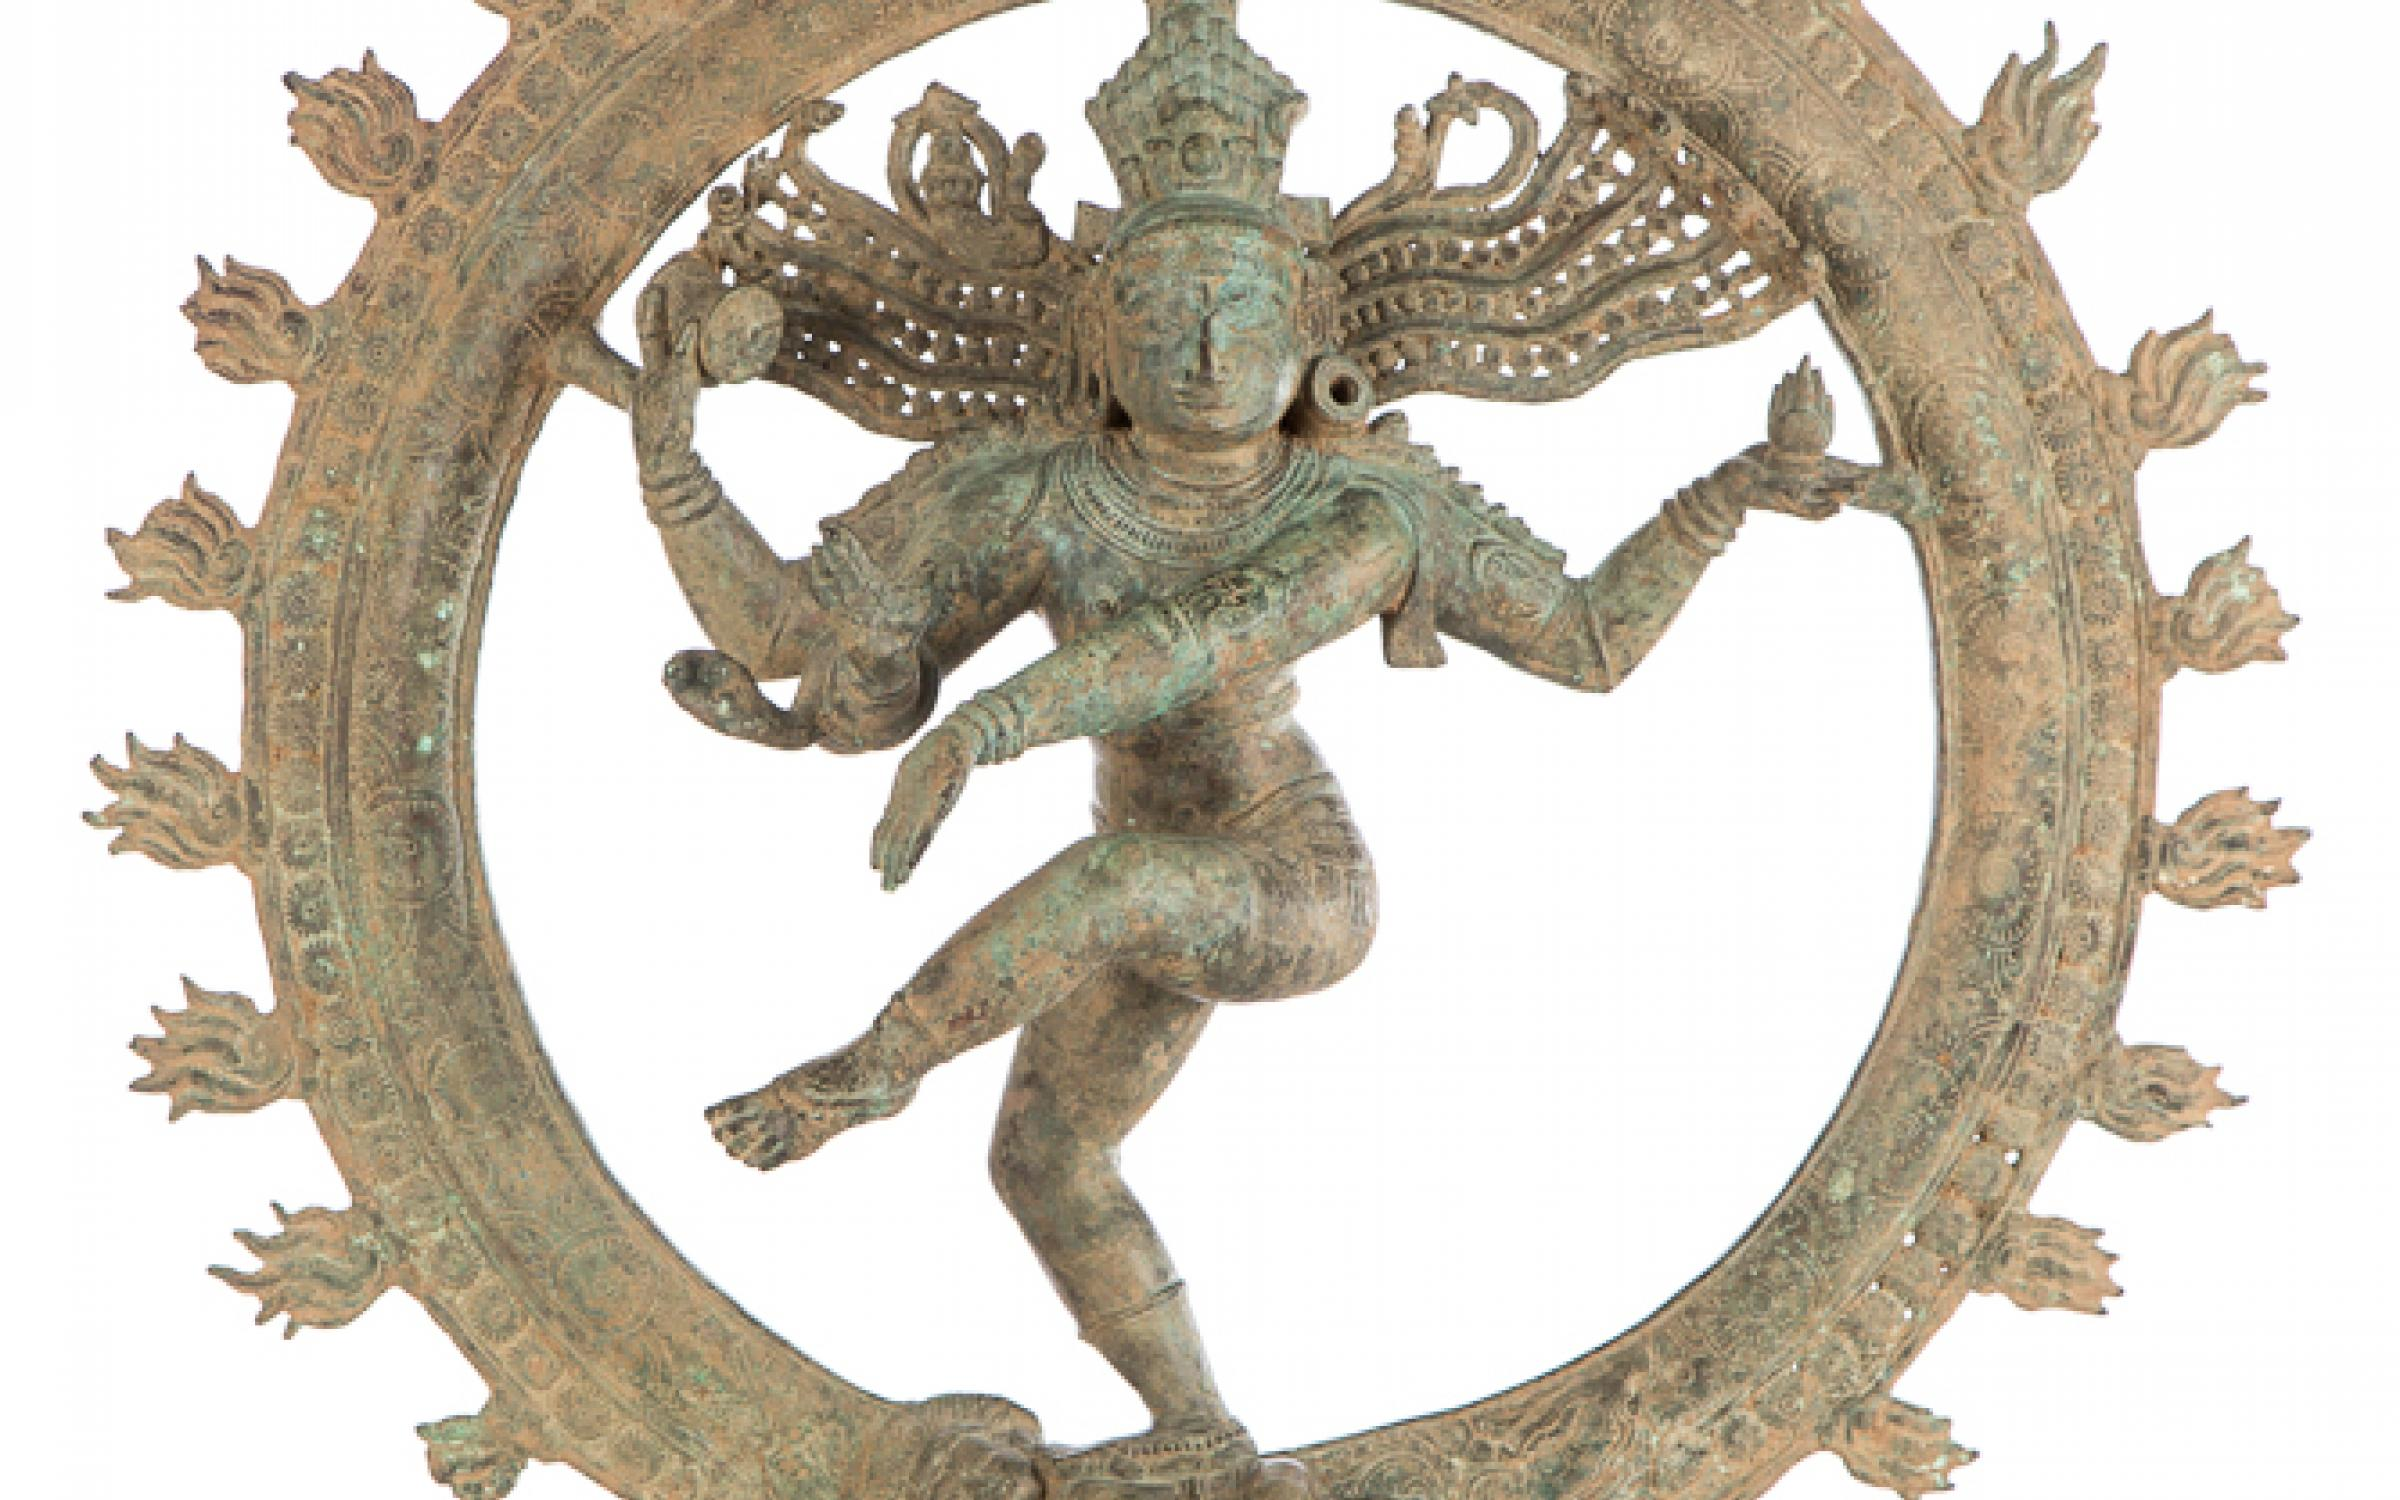 Southern Indian, Chola Dynasty, Siva as Lord of Dance, ca. 12th-13th century, bronze, 27 1/8 x 24 1/2 x 8 1/2 in., gift of the Christensen Fund to commemorate founding Director E. Frank Sanguinetti's 84th birtday, UMFA2001.11.1.